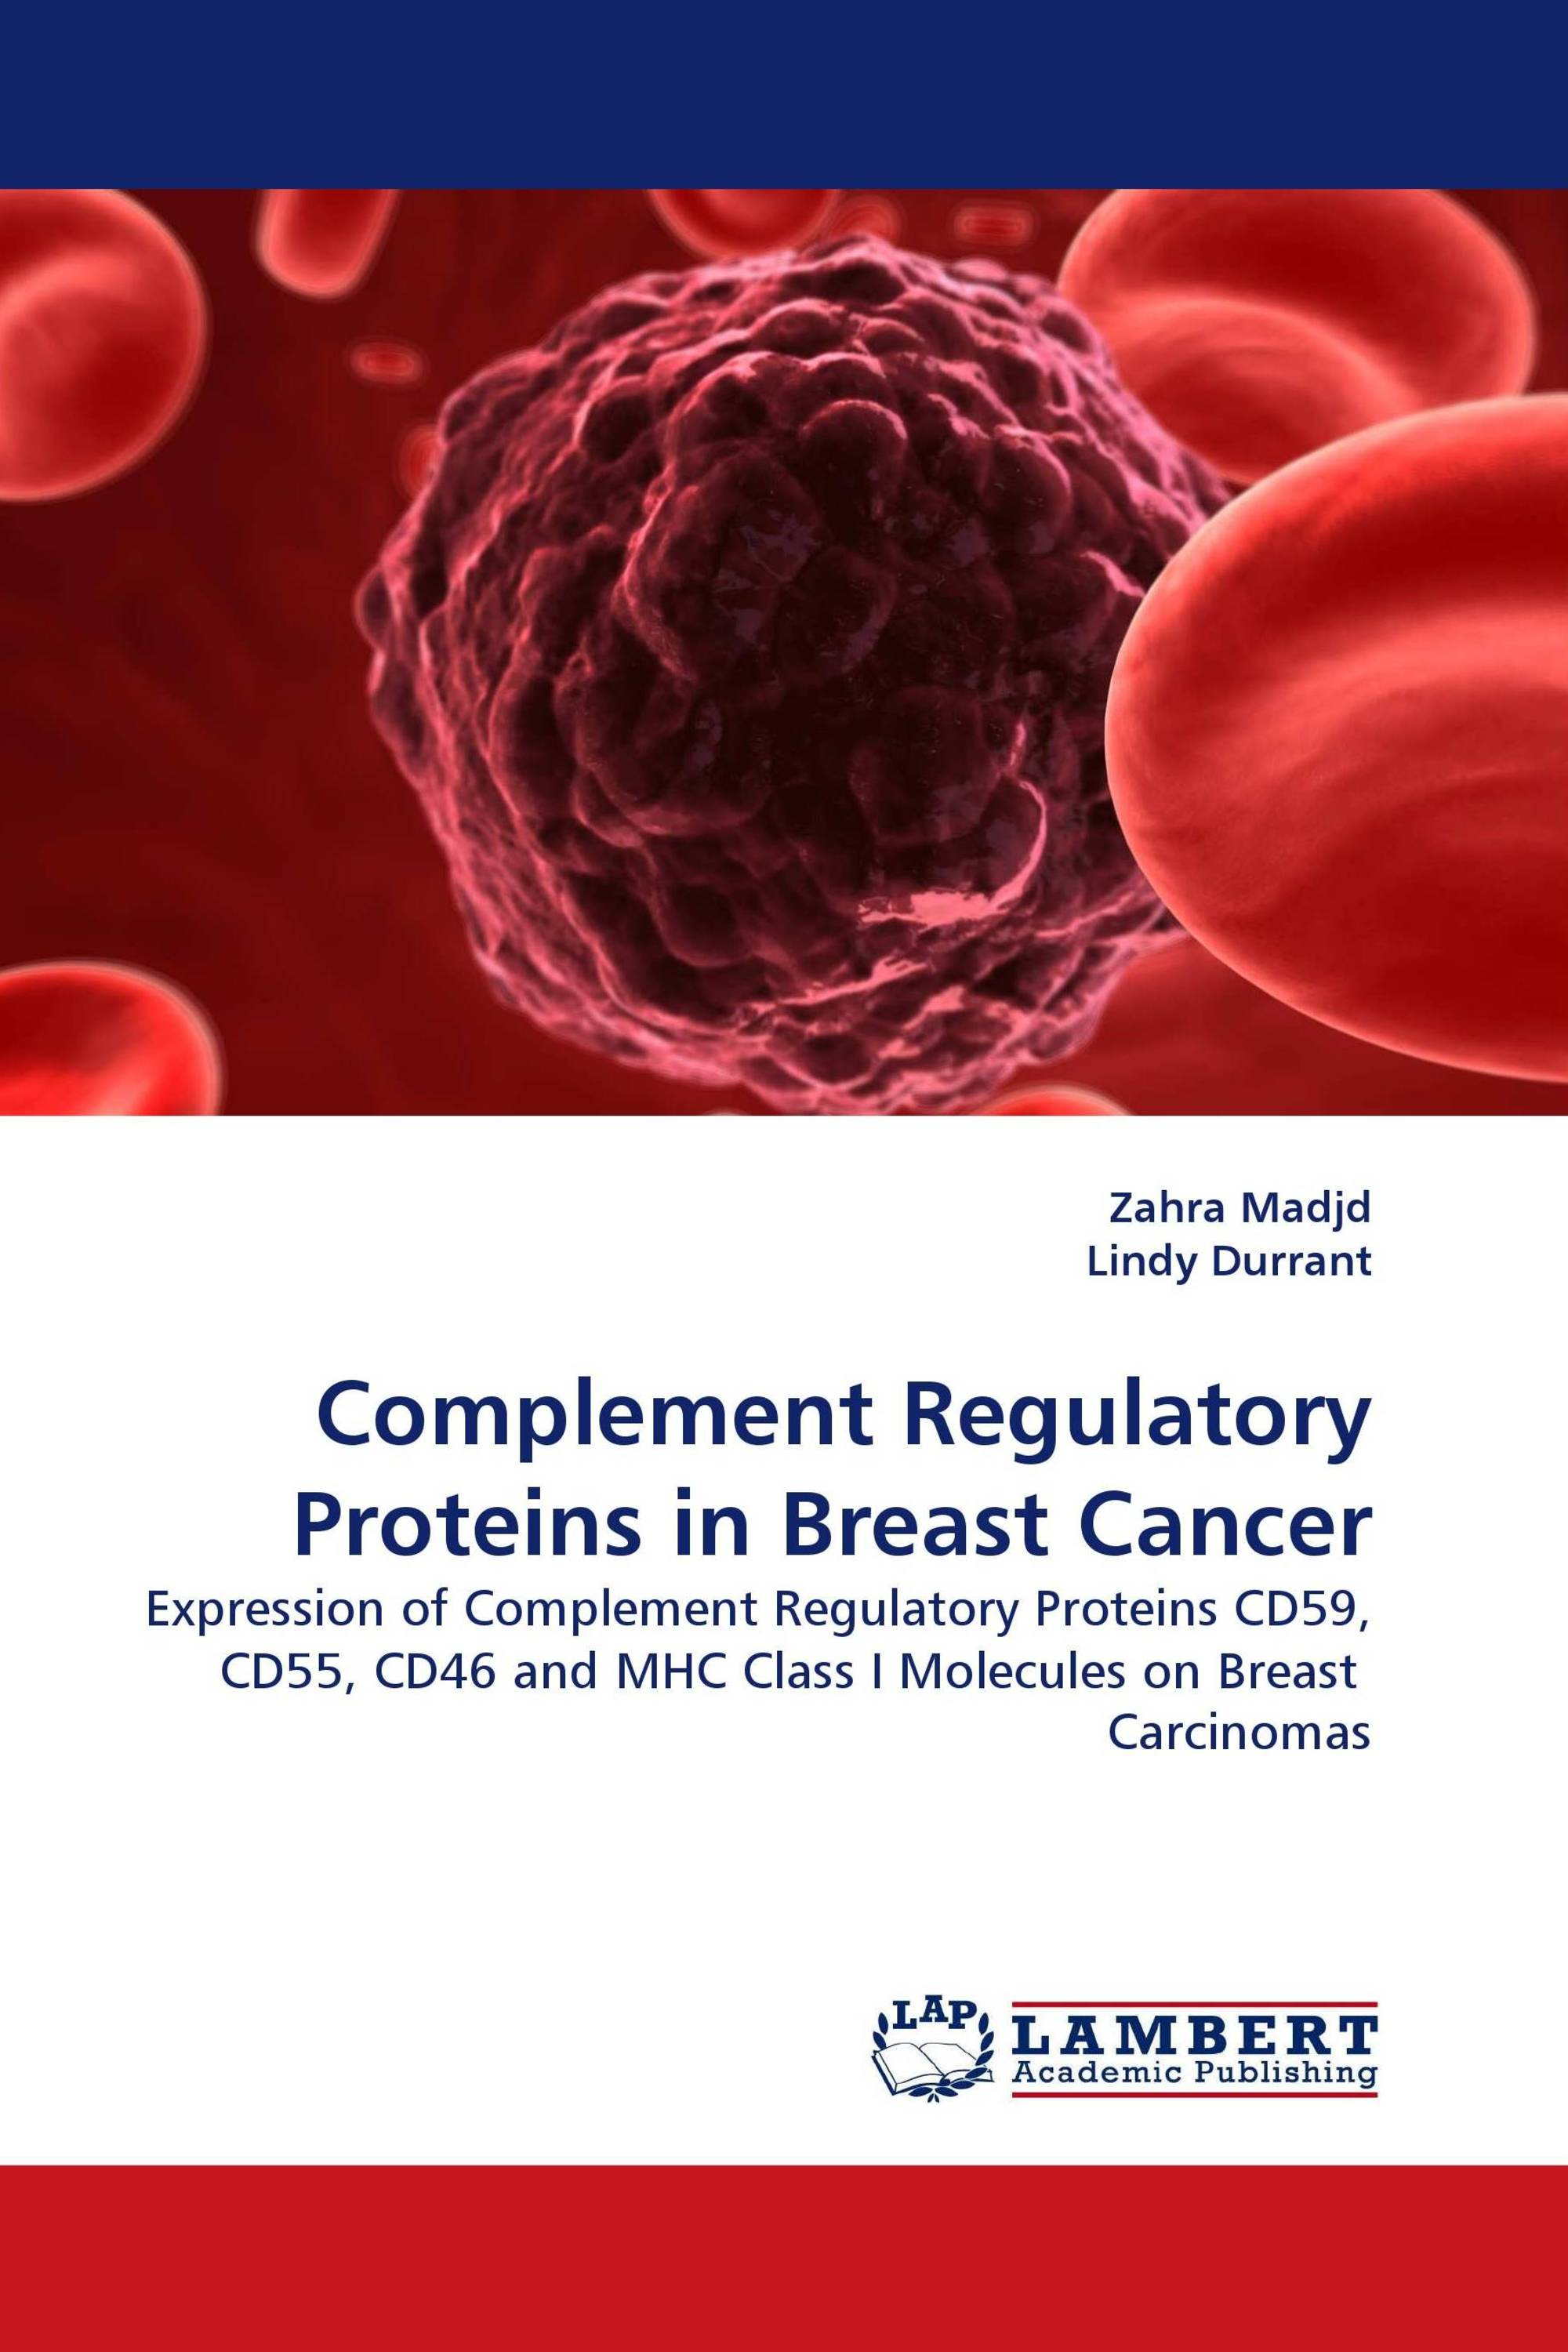 Complement Regulatory Proteins in Breast Cancer